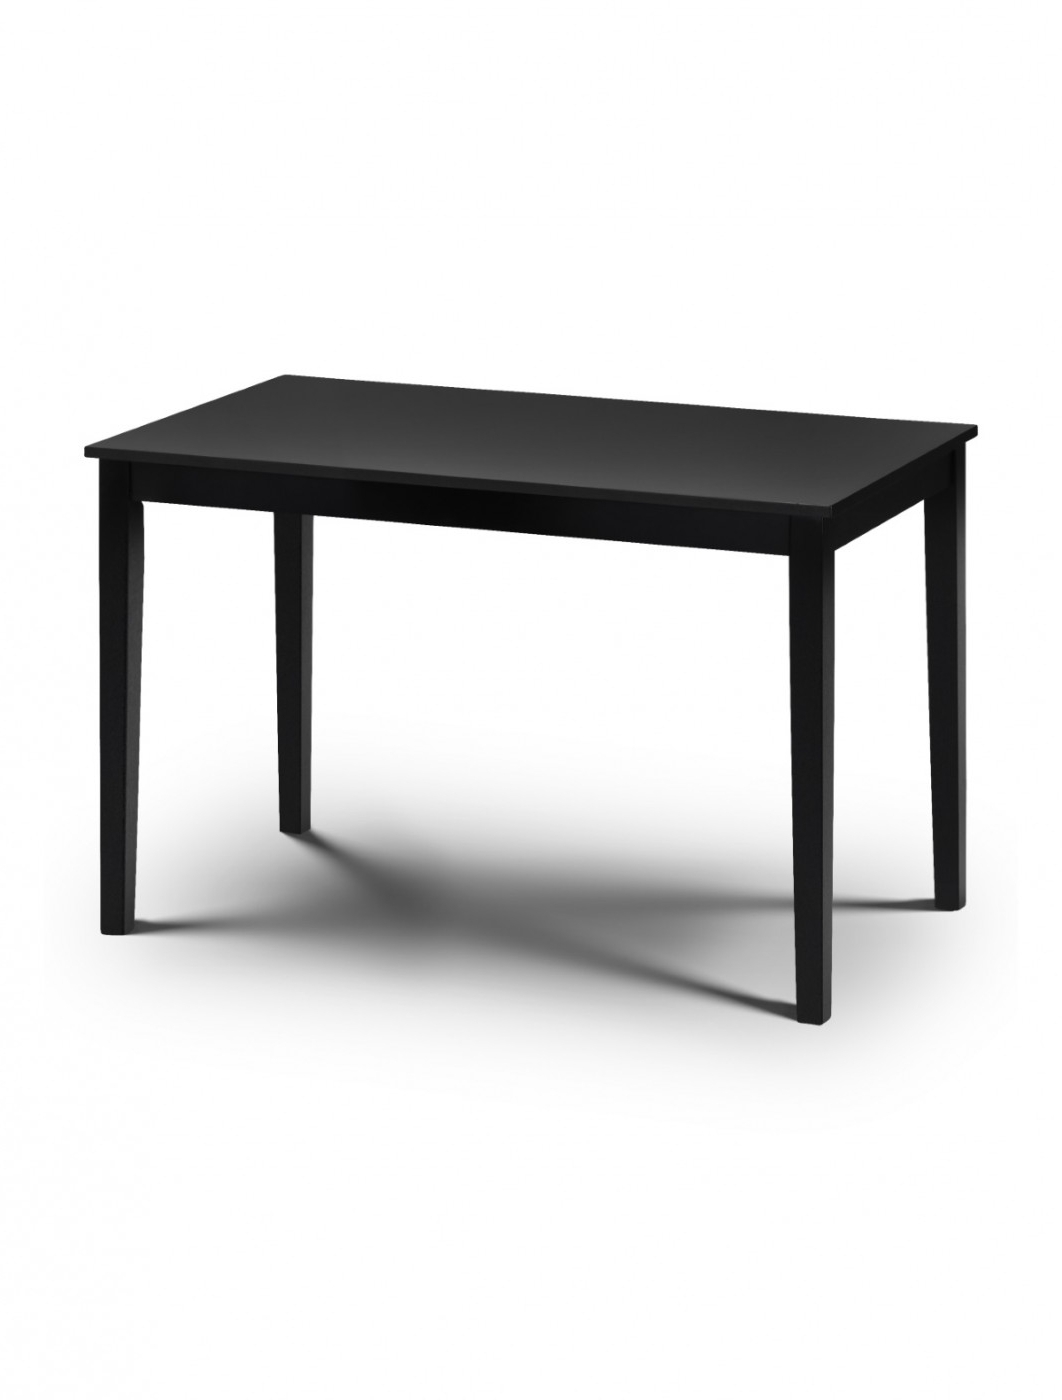 Hudson Black Dining Table And 4 Dining Chairs Hud006 (Gallery 13 of 25)